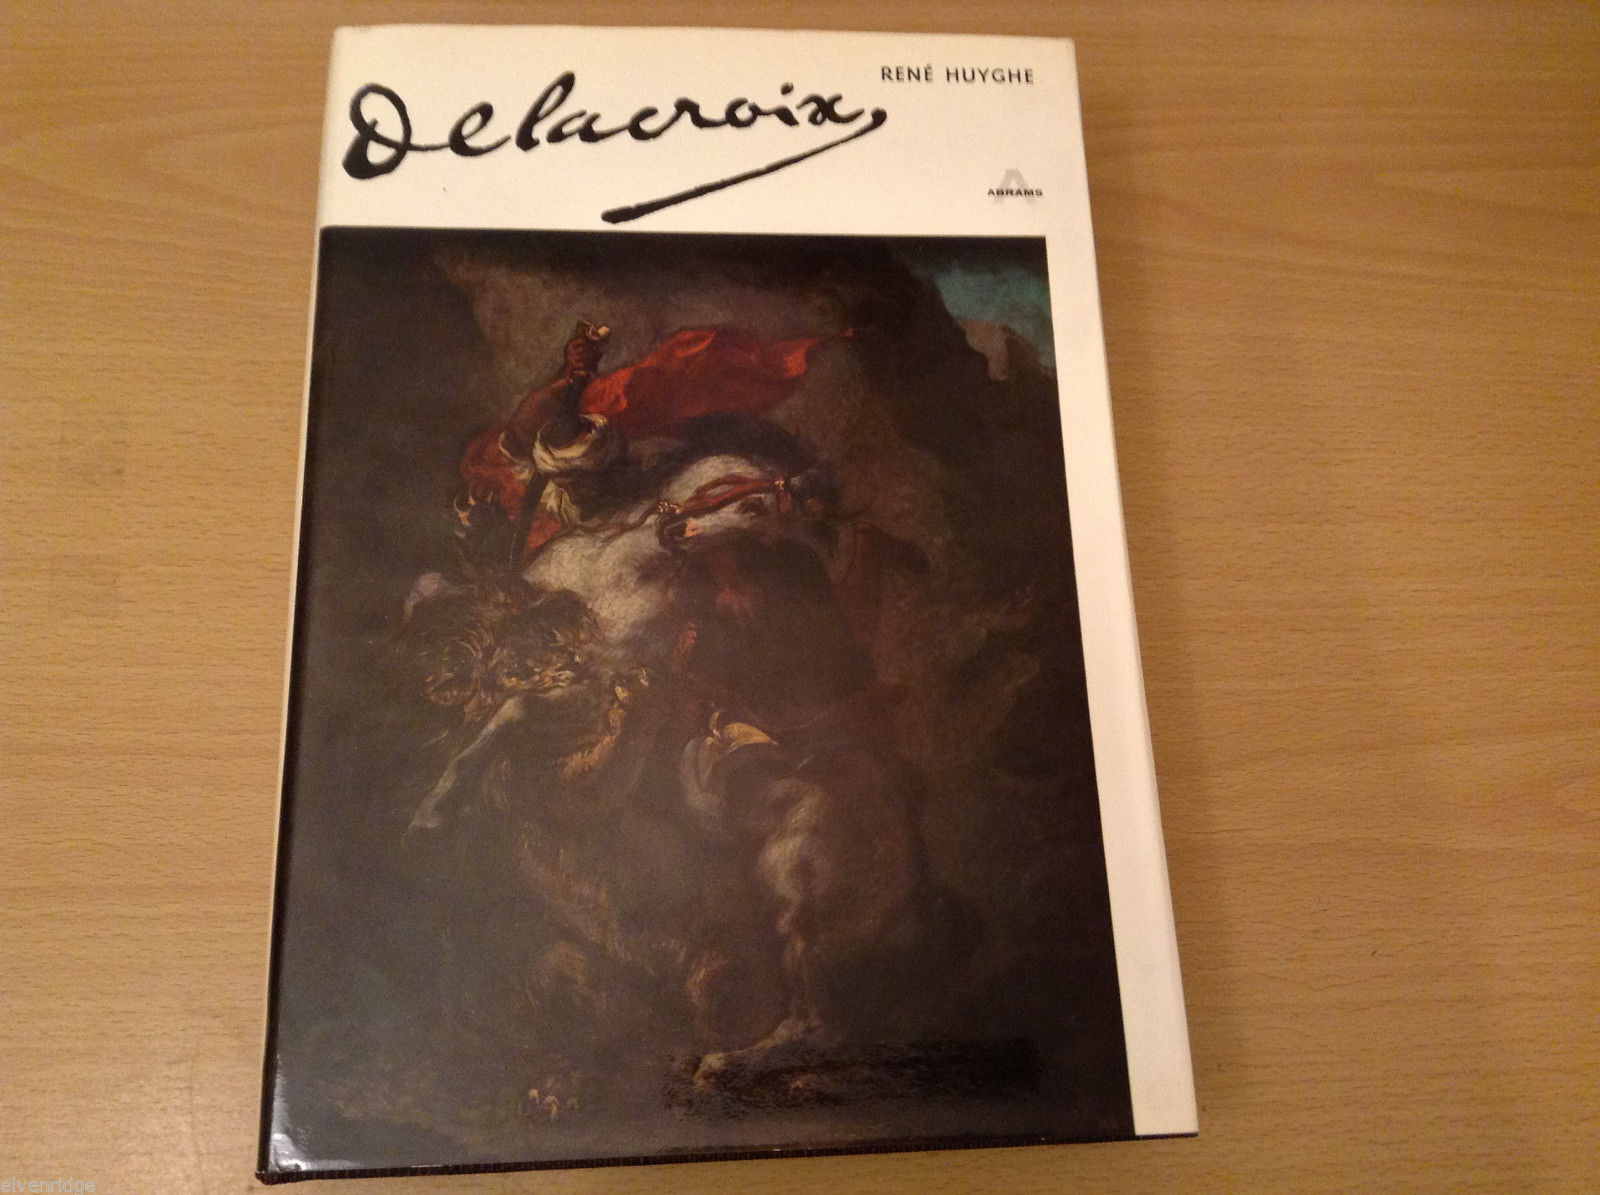 Vintage 1963 Delacroix by Rene Huyghe Art Book 564 Pages